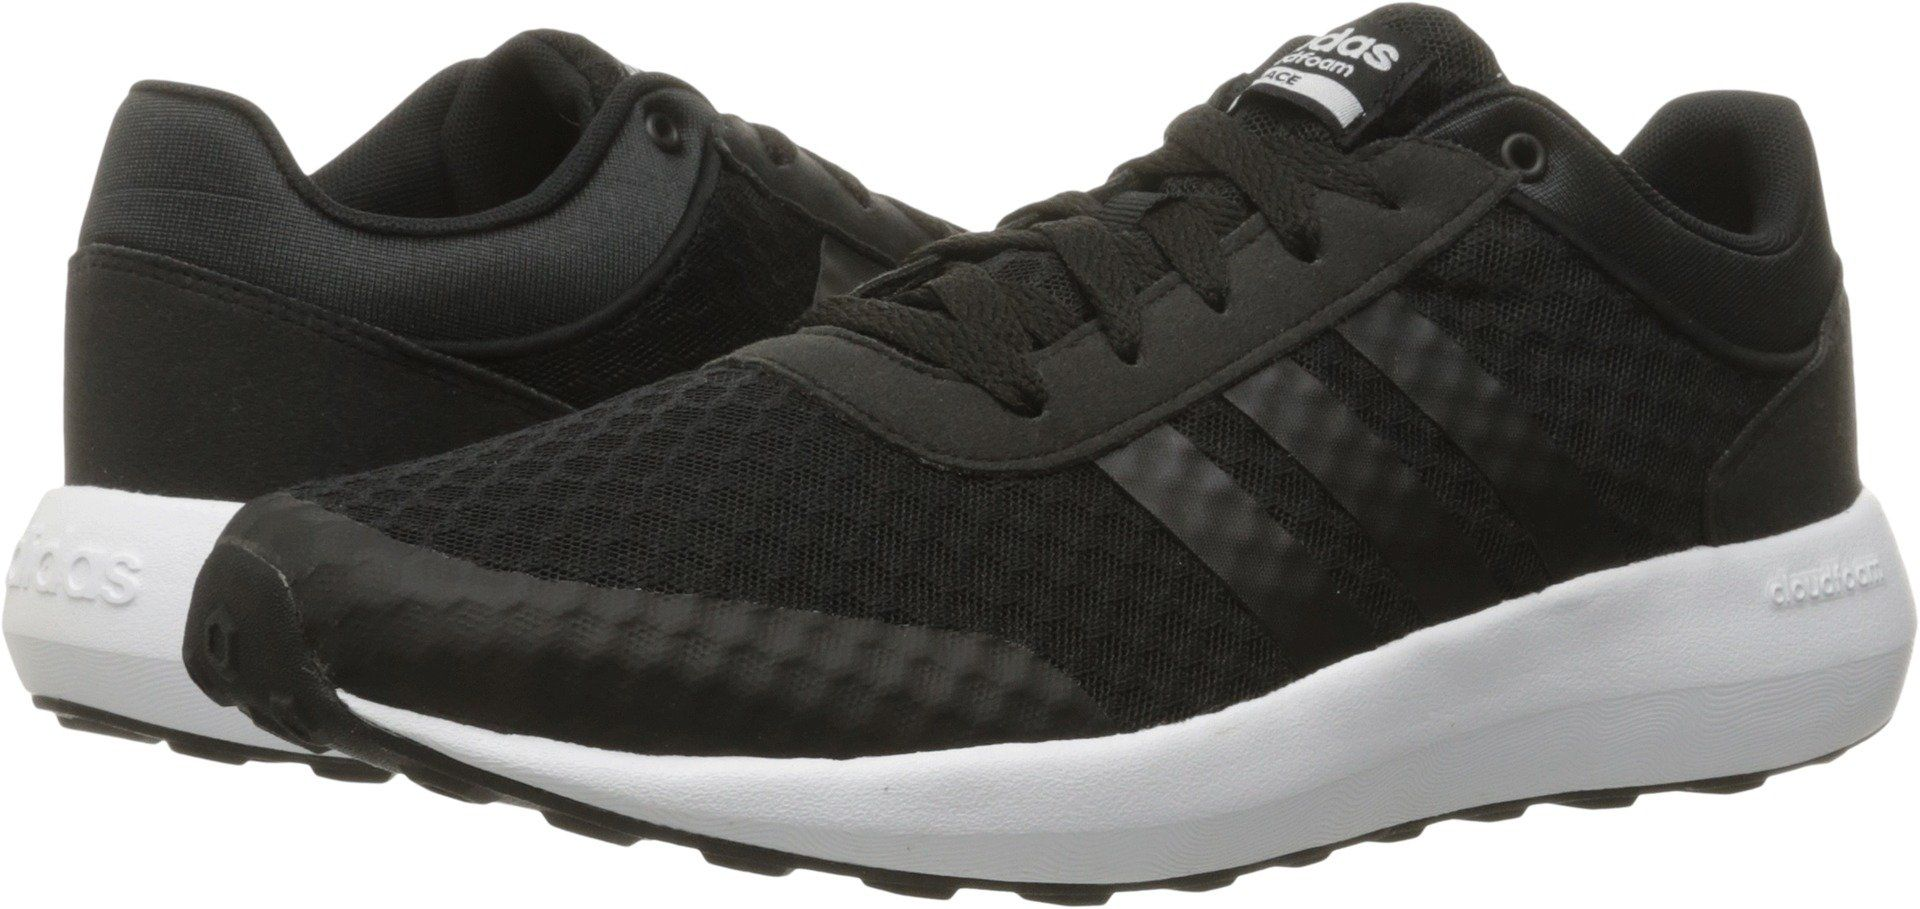 buy > men's cloudfoam race running shoes, Up to 75% OFF